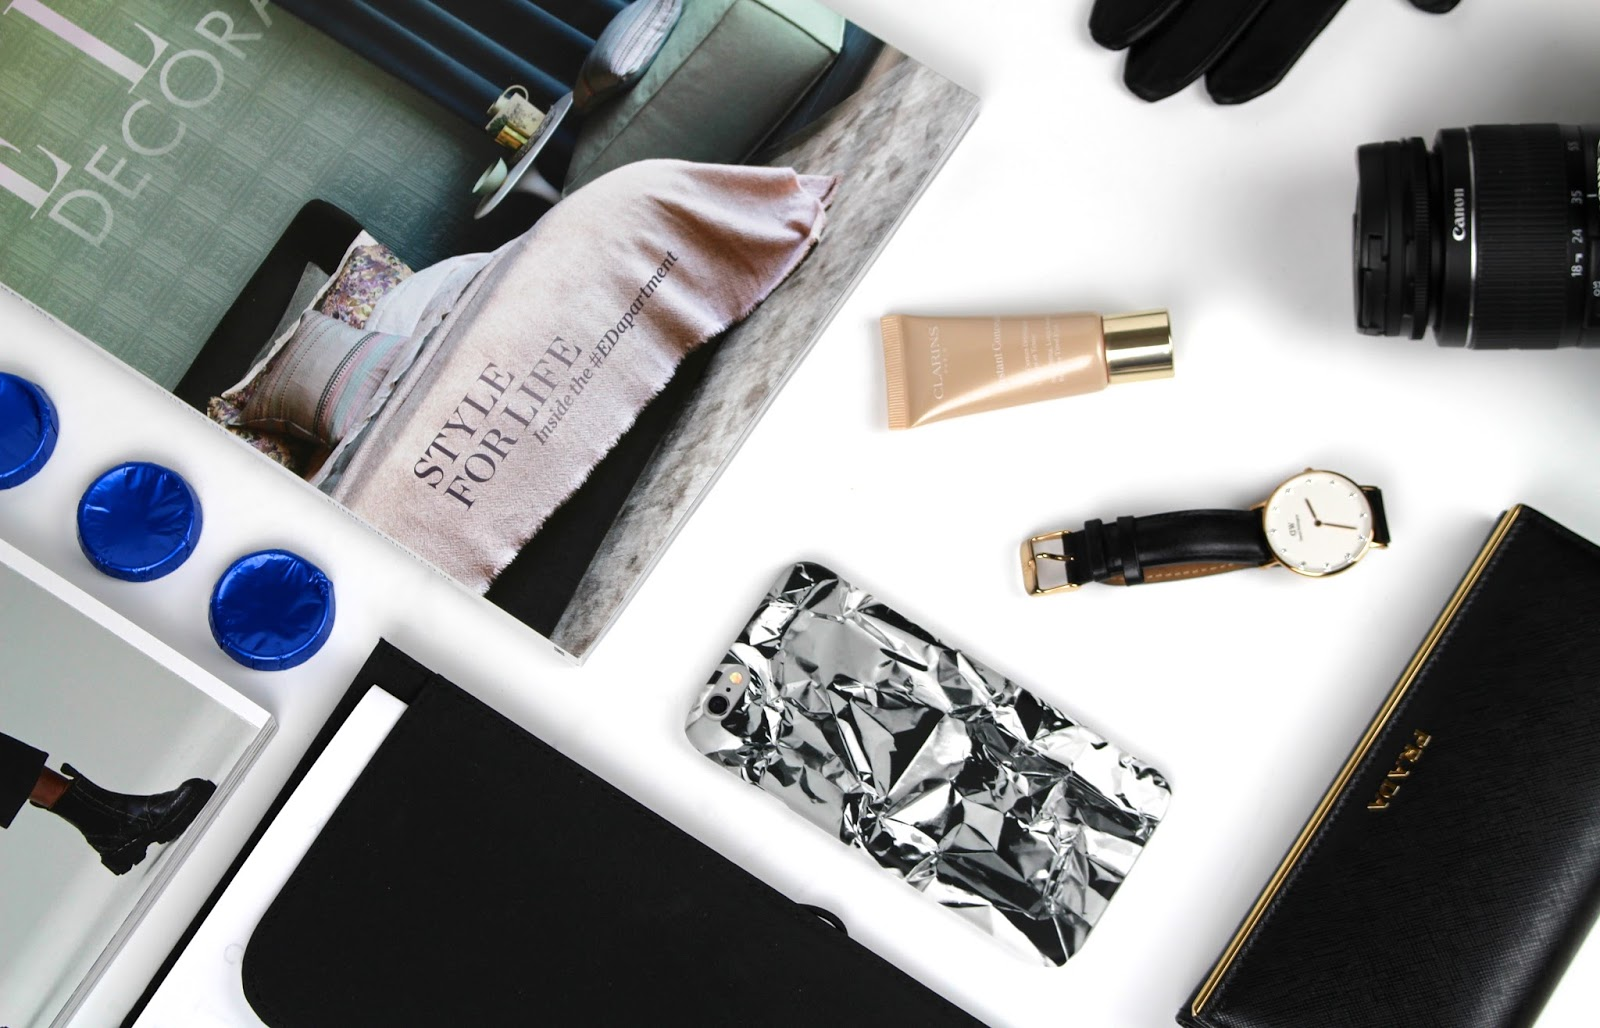 urban flatlay technology beauty fashion